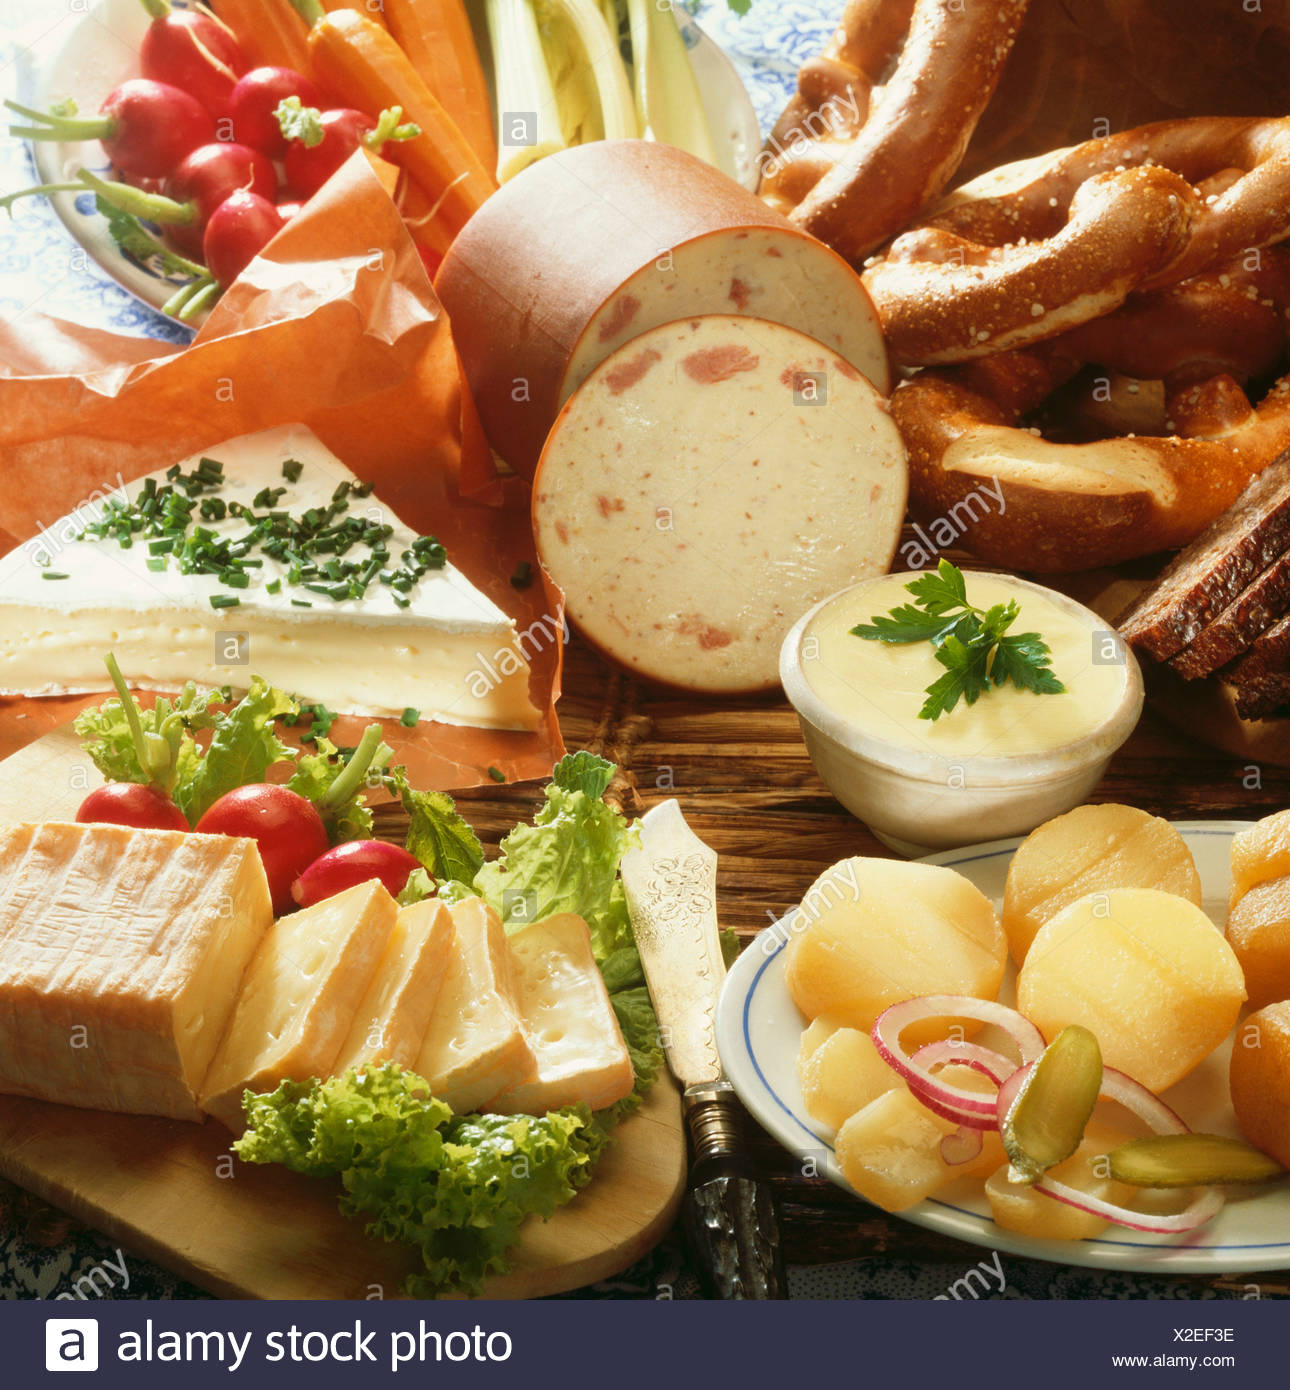 Platter of cheese and sausages for hearty snack - Stock Image